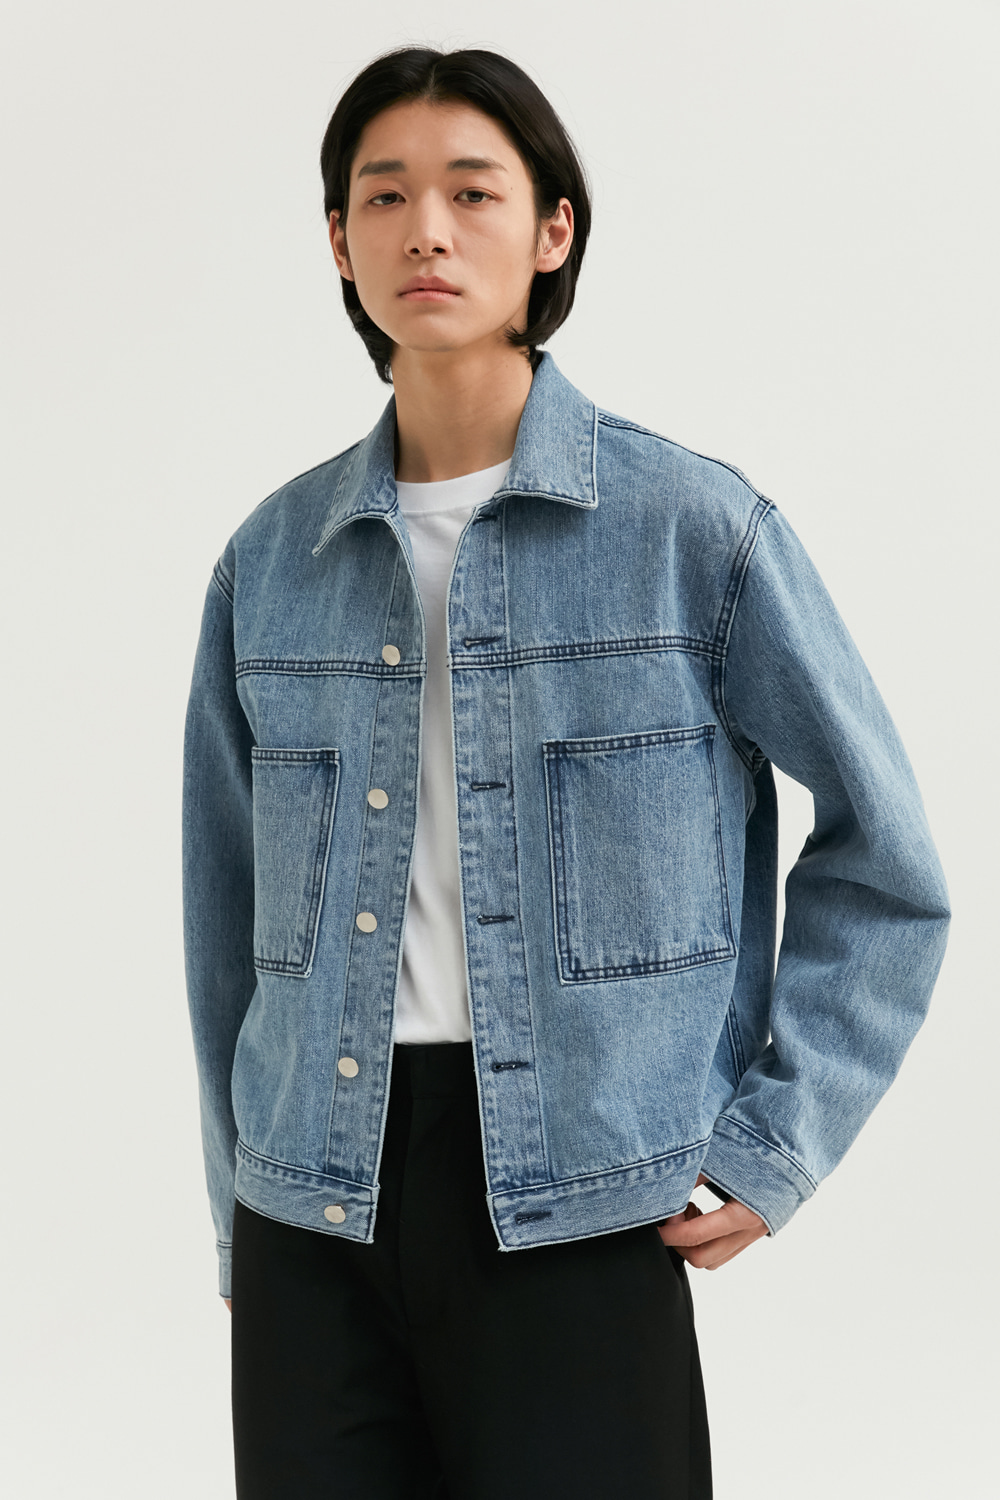 Two Pocket Denim Jacket [Indigo Blue] -60%